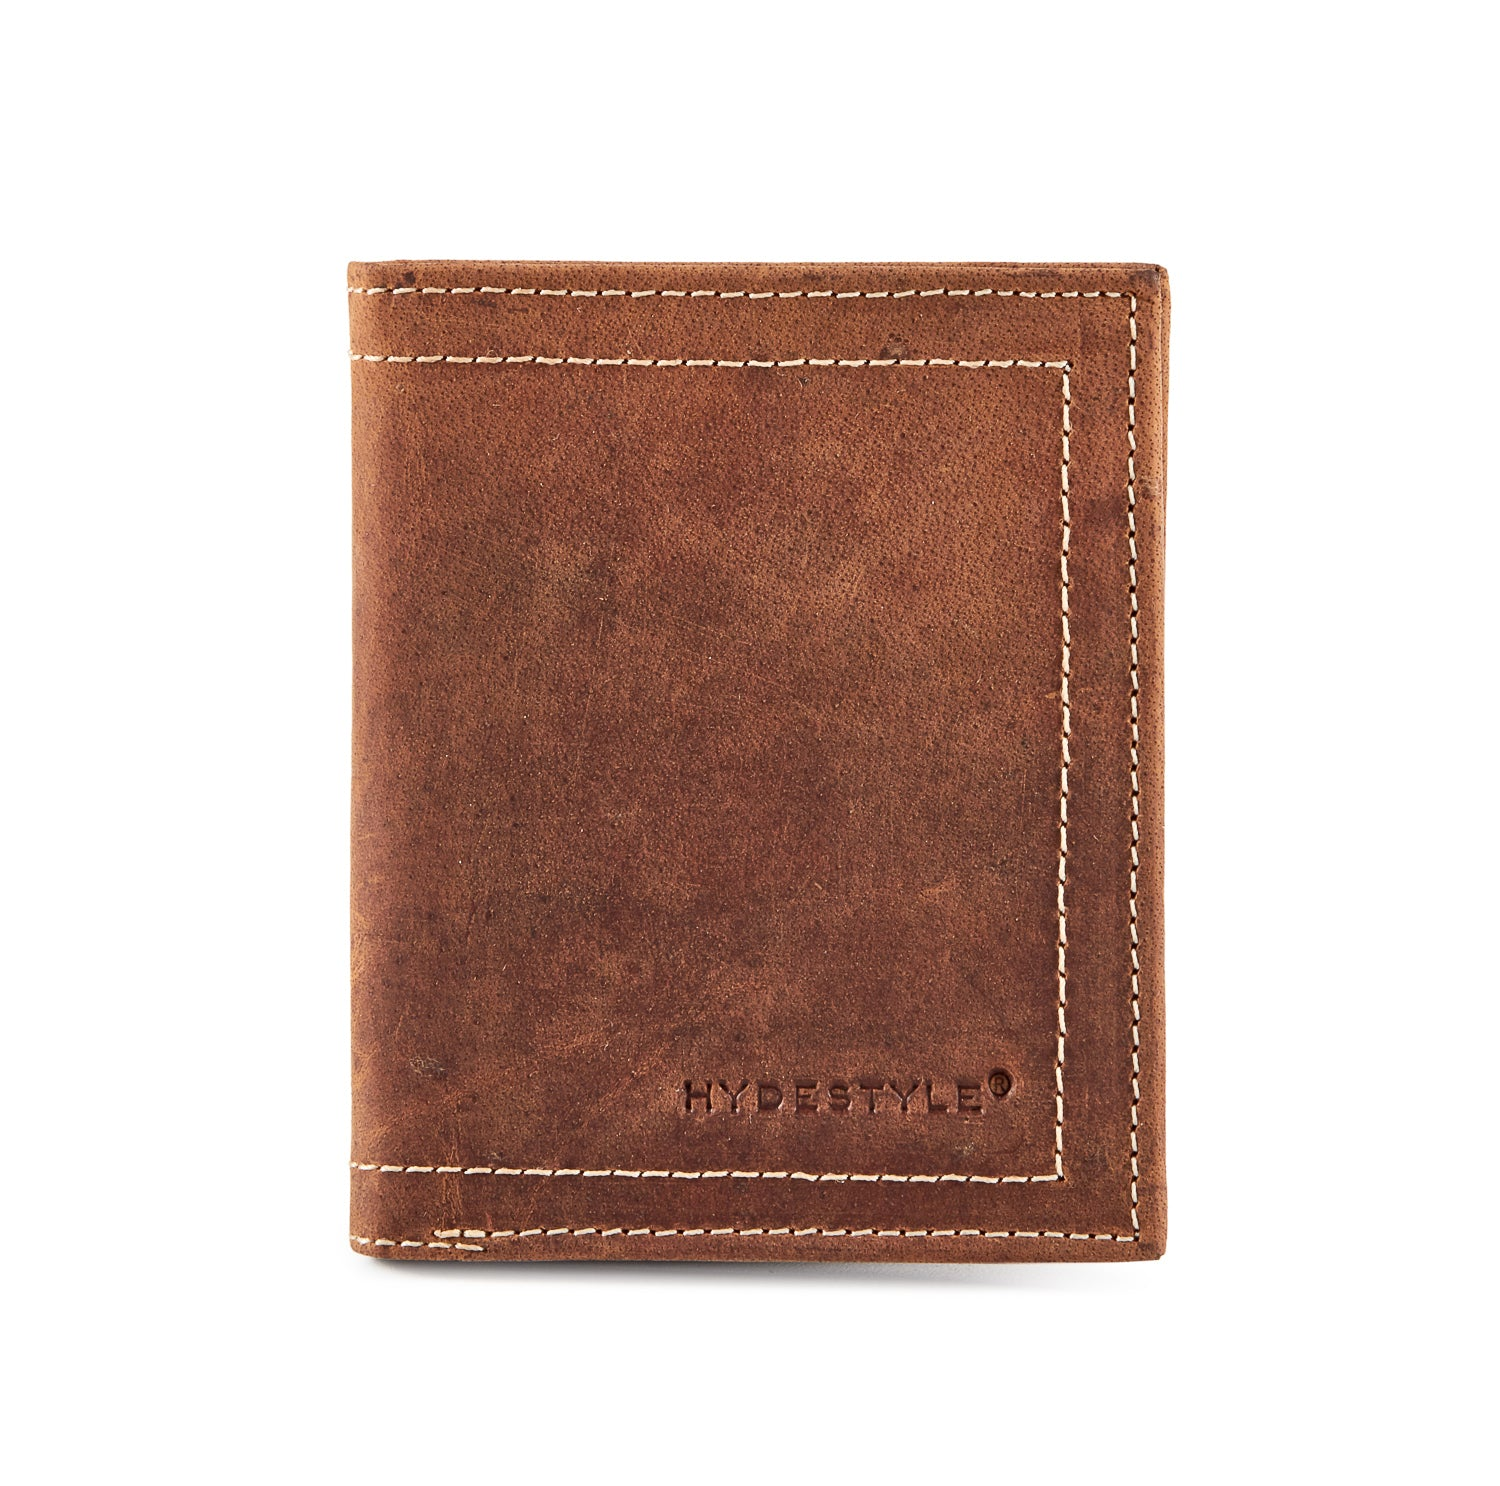 Distressed leather bi-fold ID and coin wallet #GW704